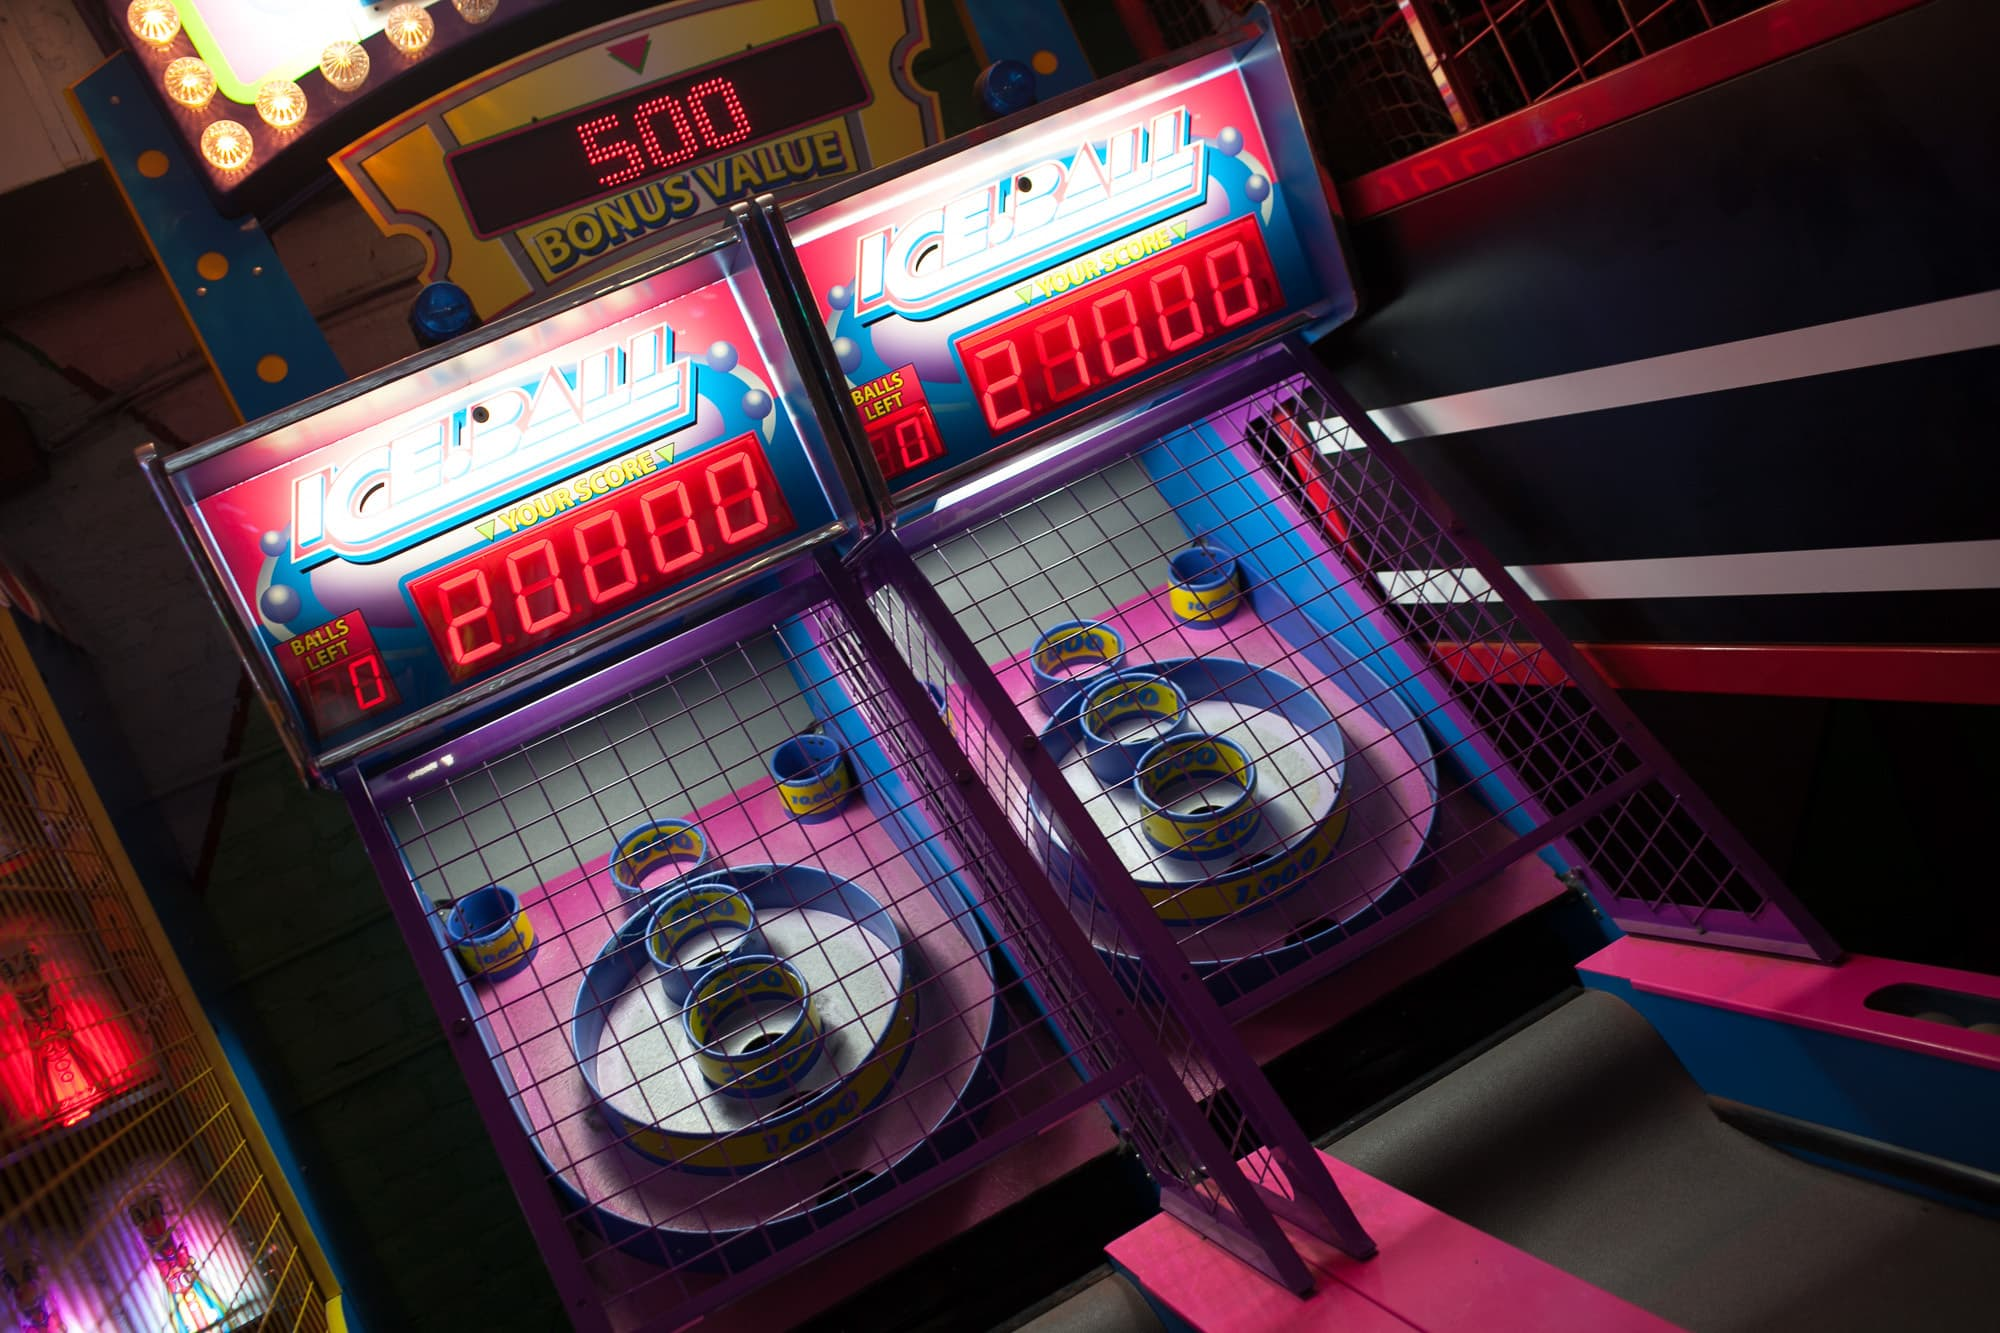 Skeeball at Chinatown Arcade